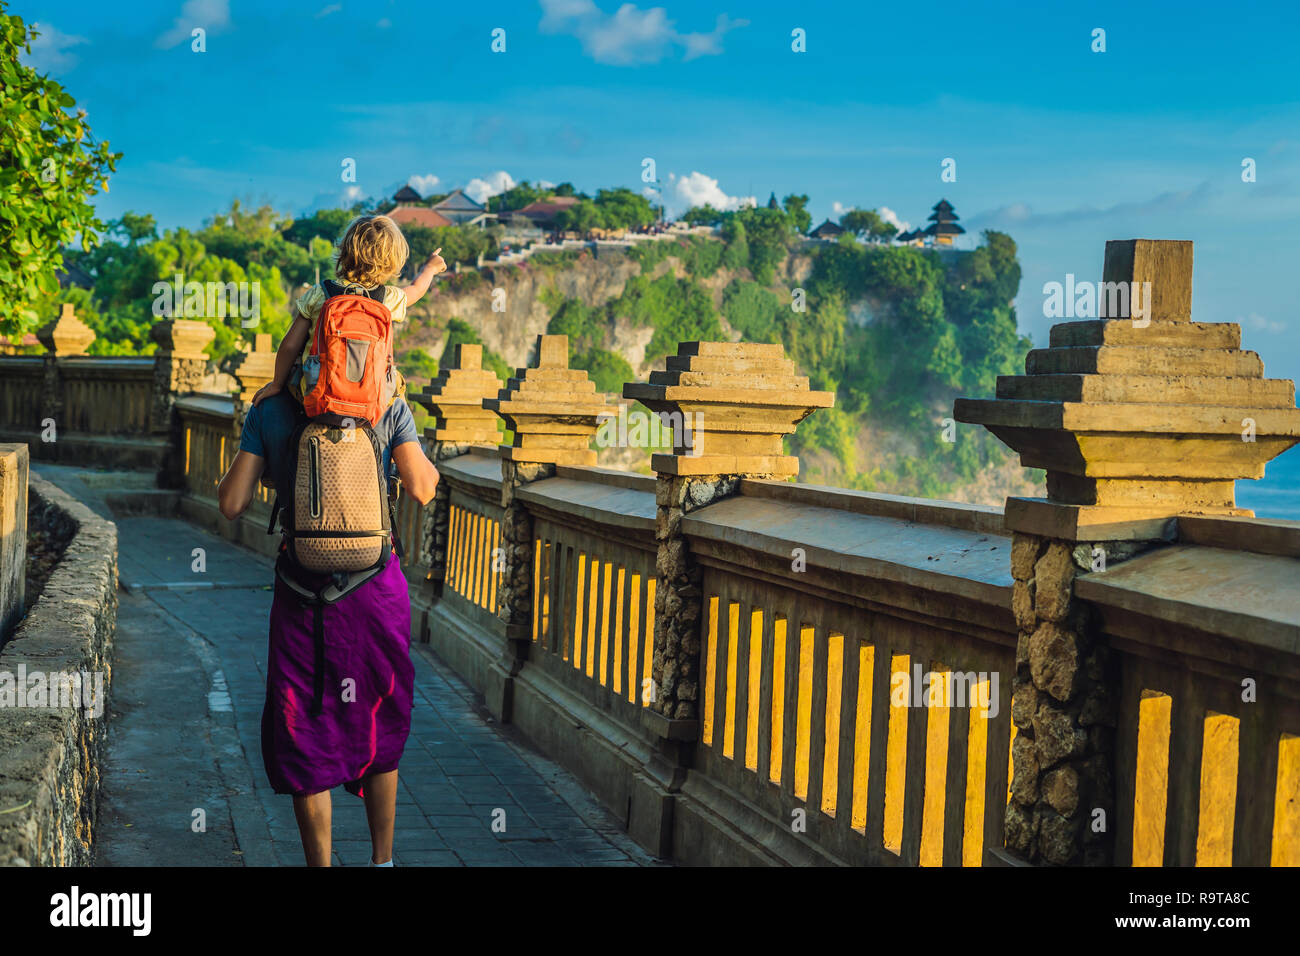 Dad and son travelers in Pura Luhur Uluwatu temple, Bali, Indonesia. Amazing landscape - cliff with blue sky and sea. Traveling with kids concept Stock Photo